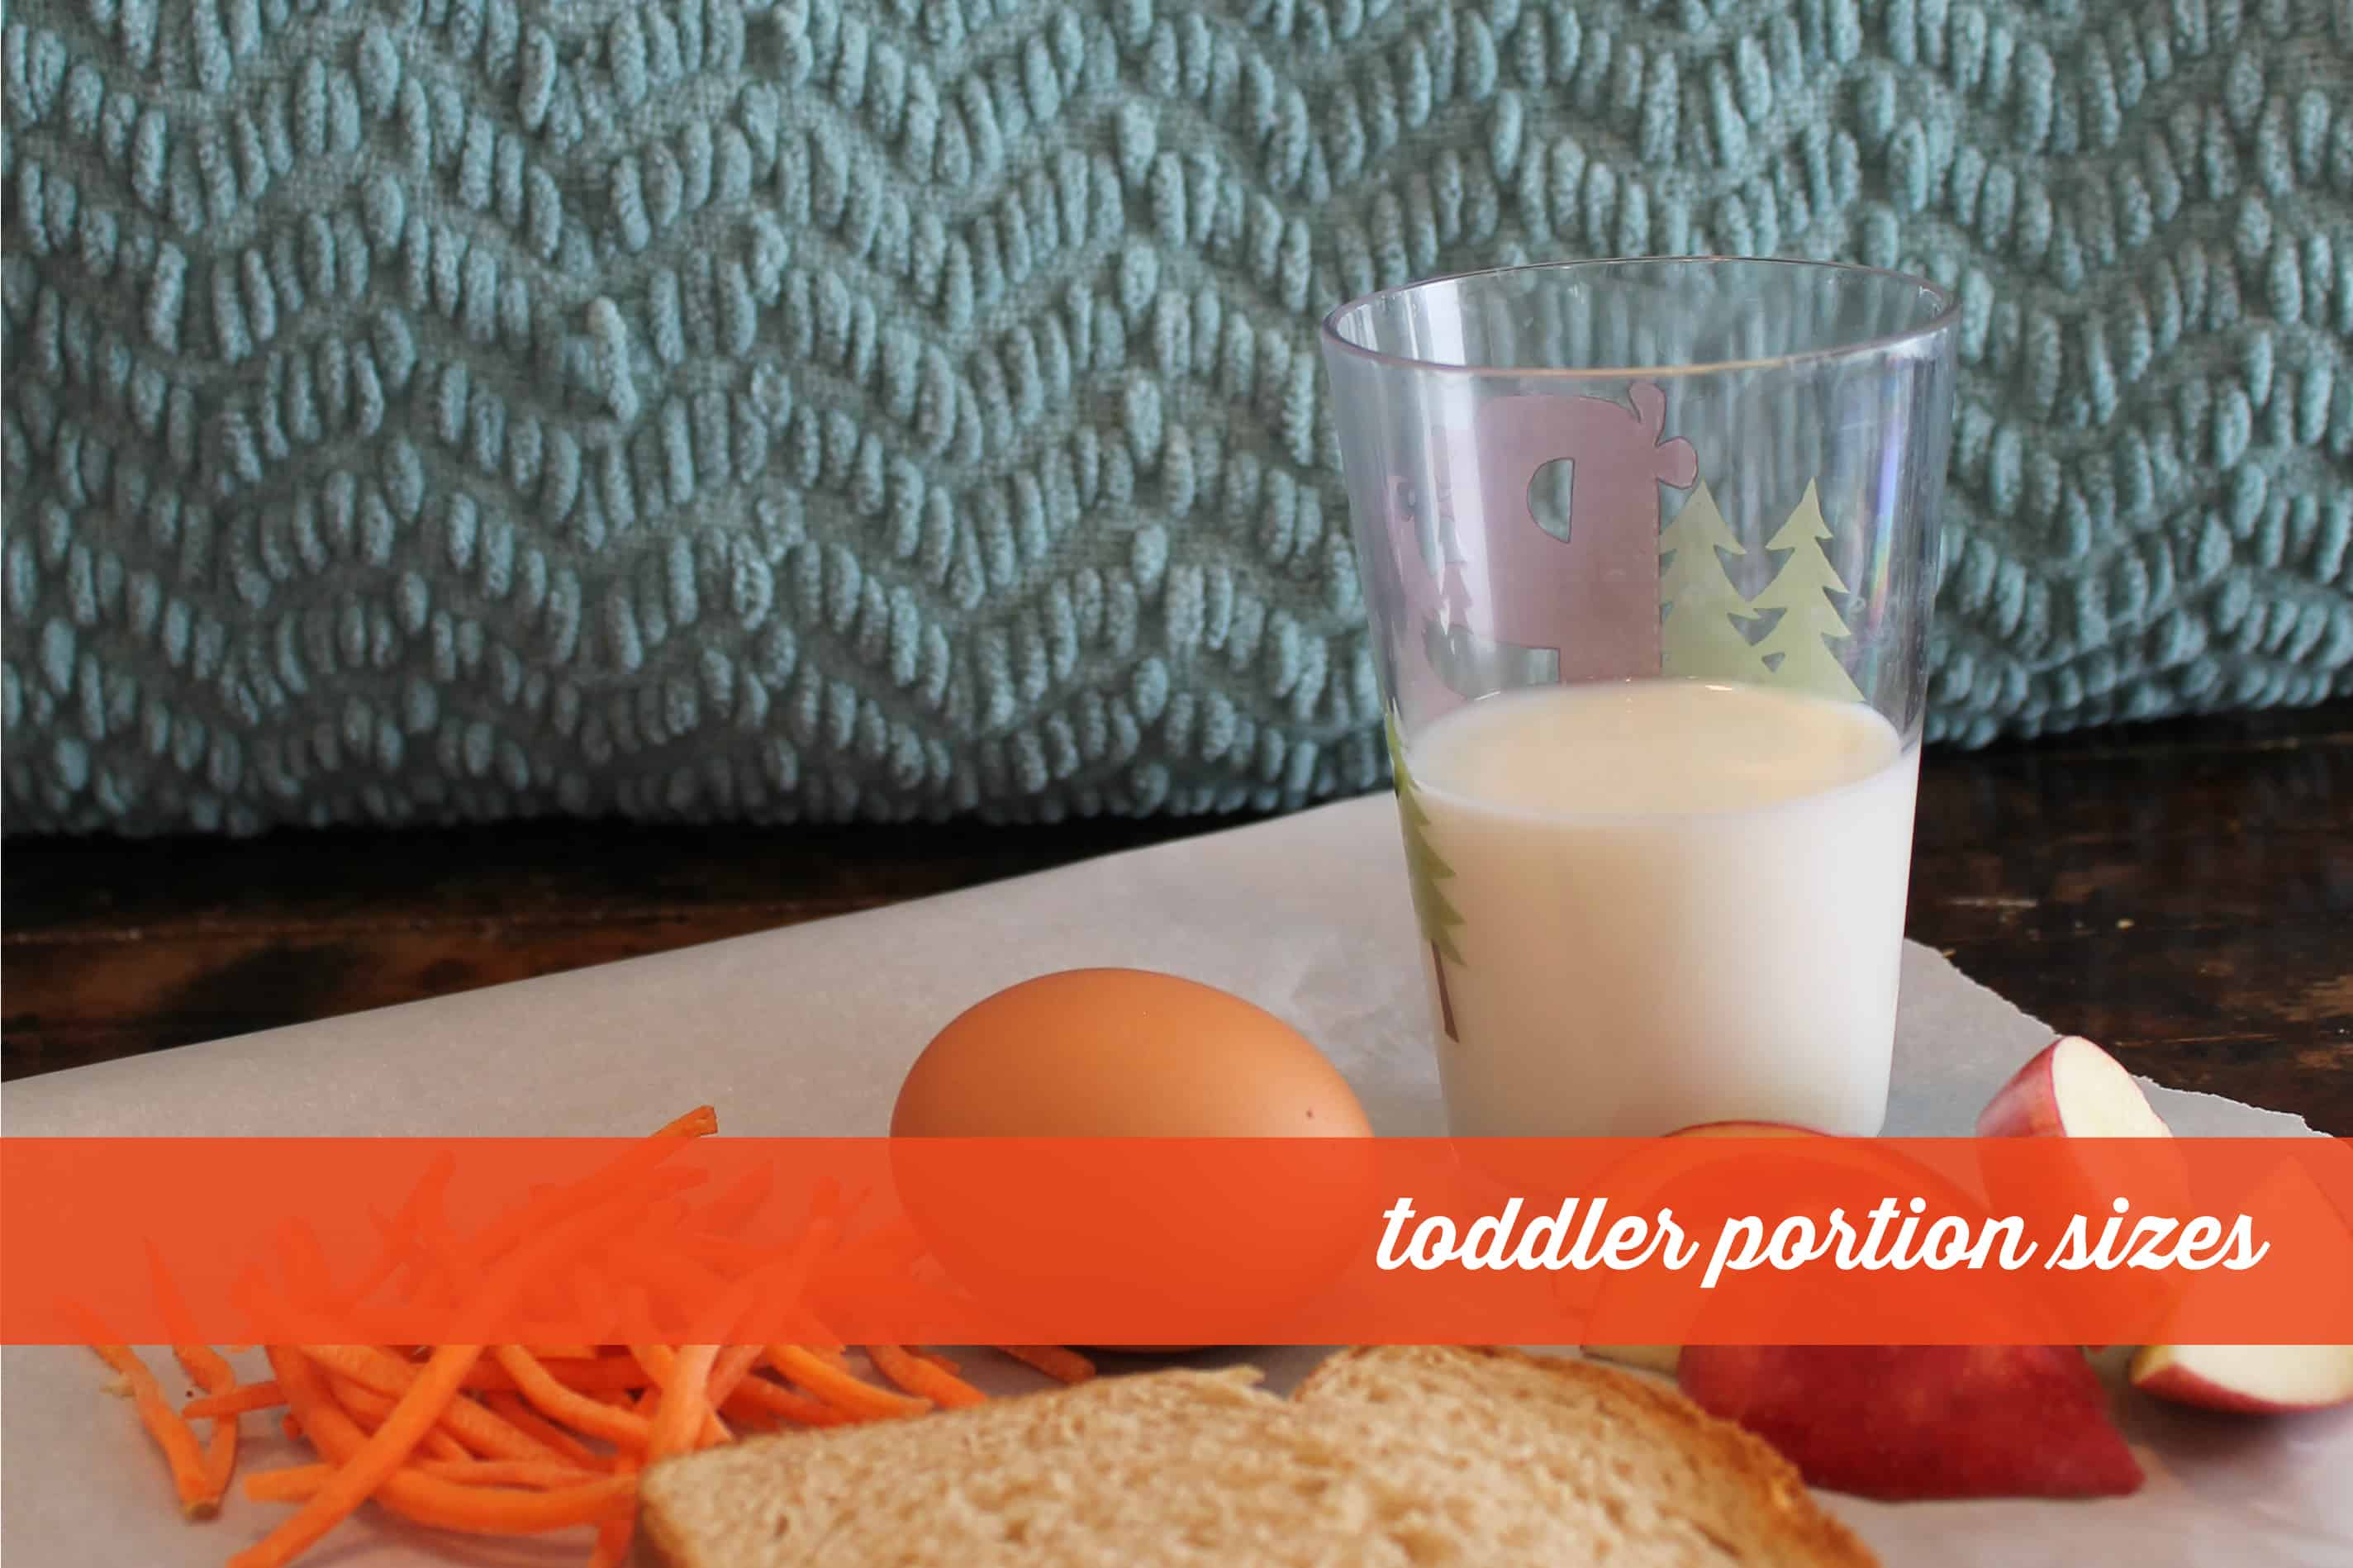 toddler portion sizes